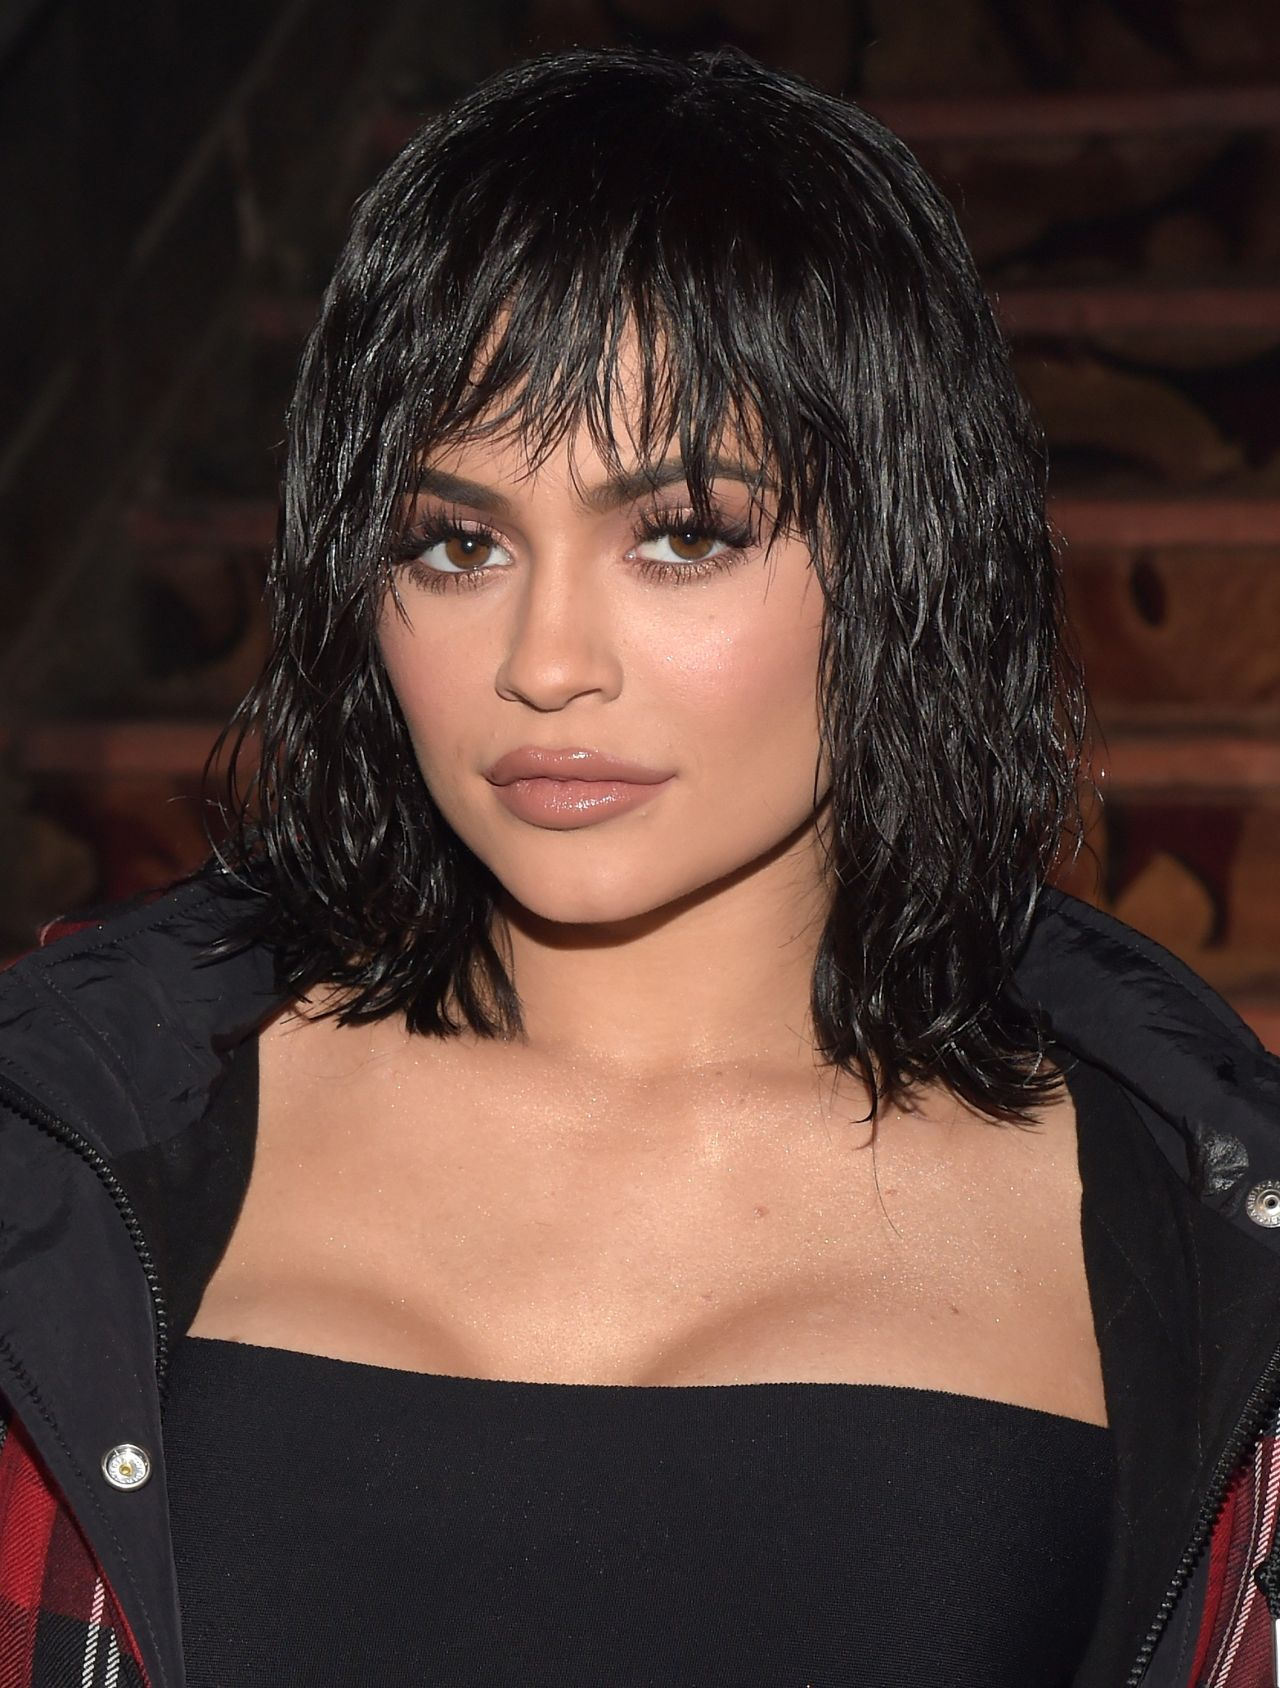 Kylie Jenner Alexander Wang Fashion Show In New York 2